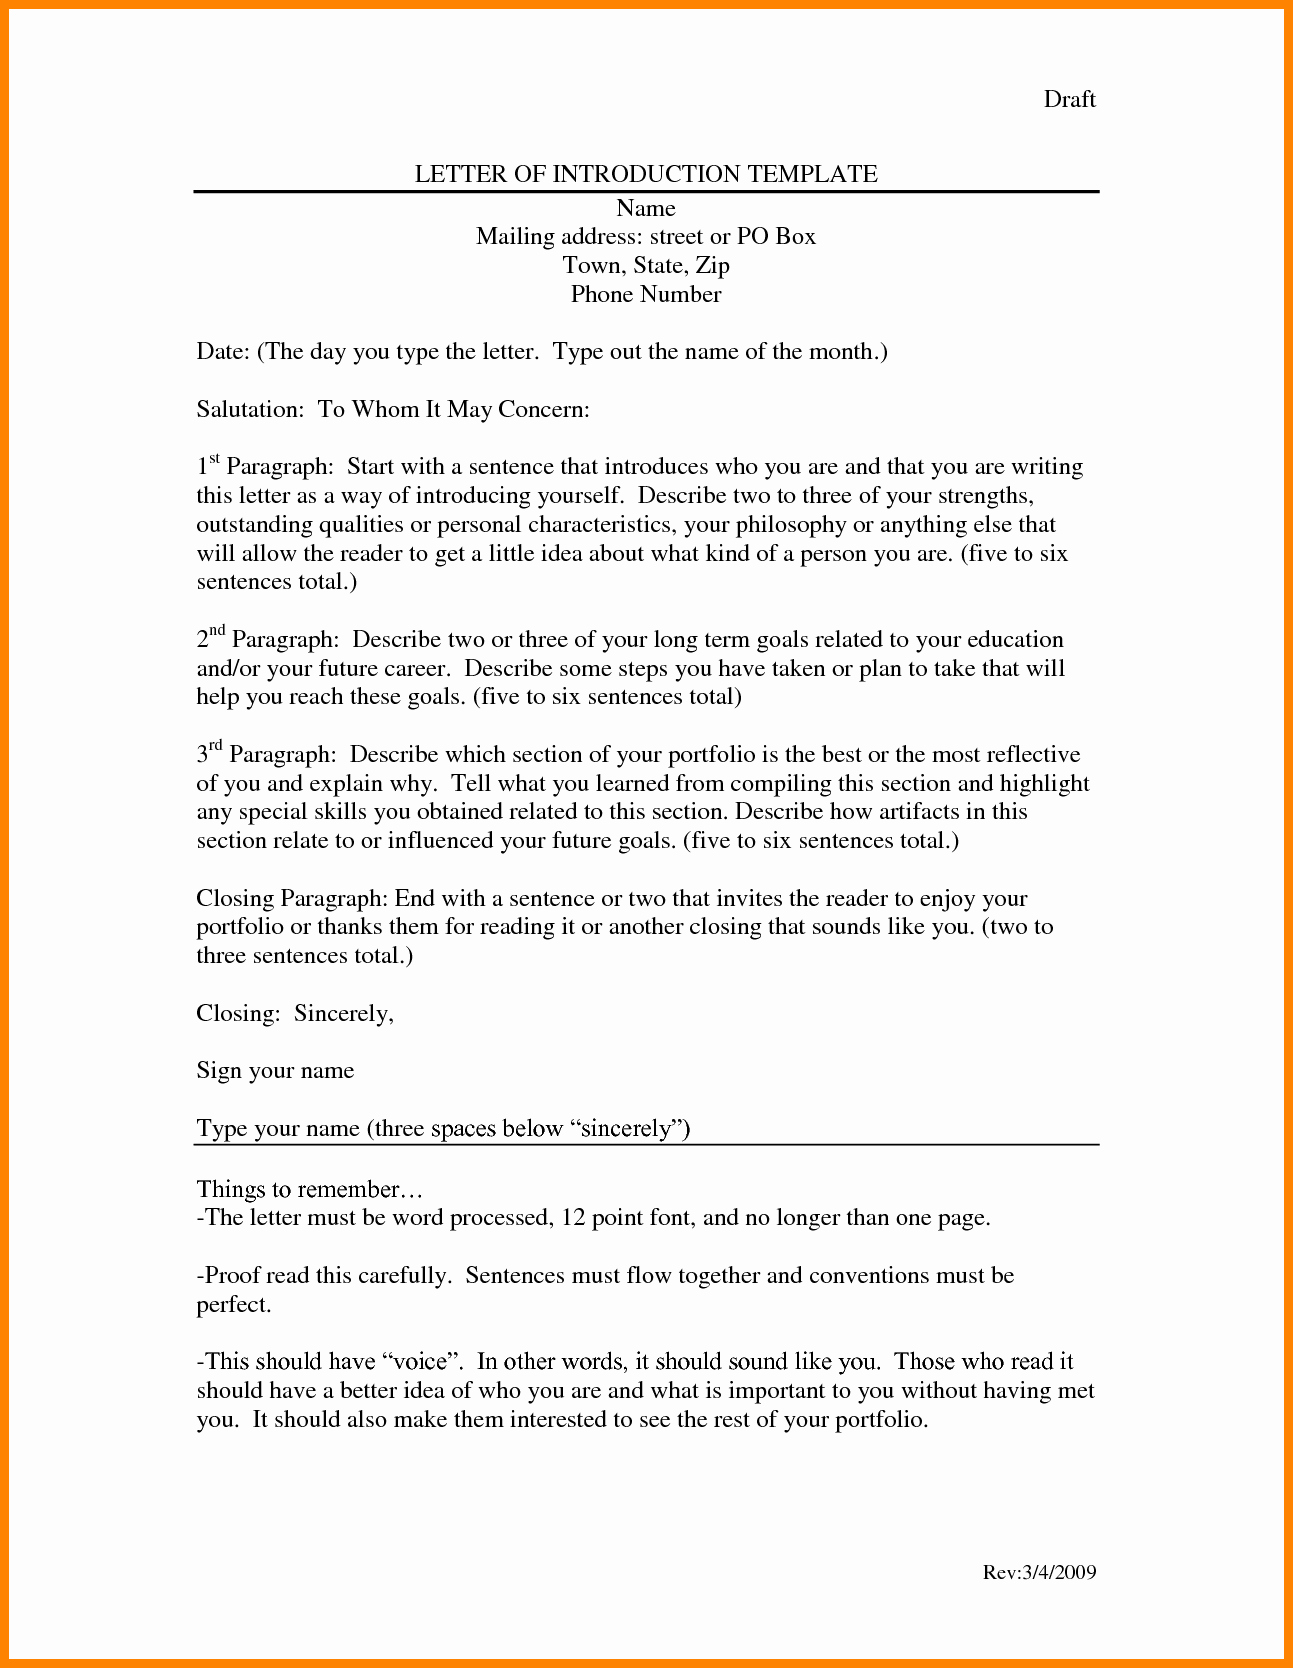 Letters Of Introduction Templates Fresh 9 Introduction Letter to Colleagues